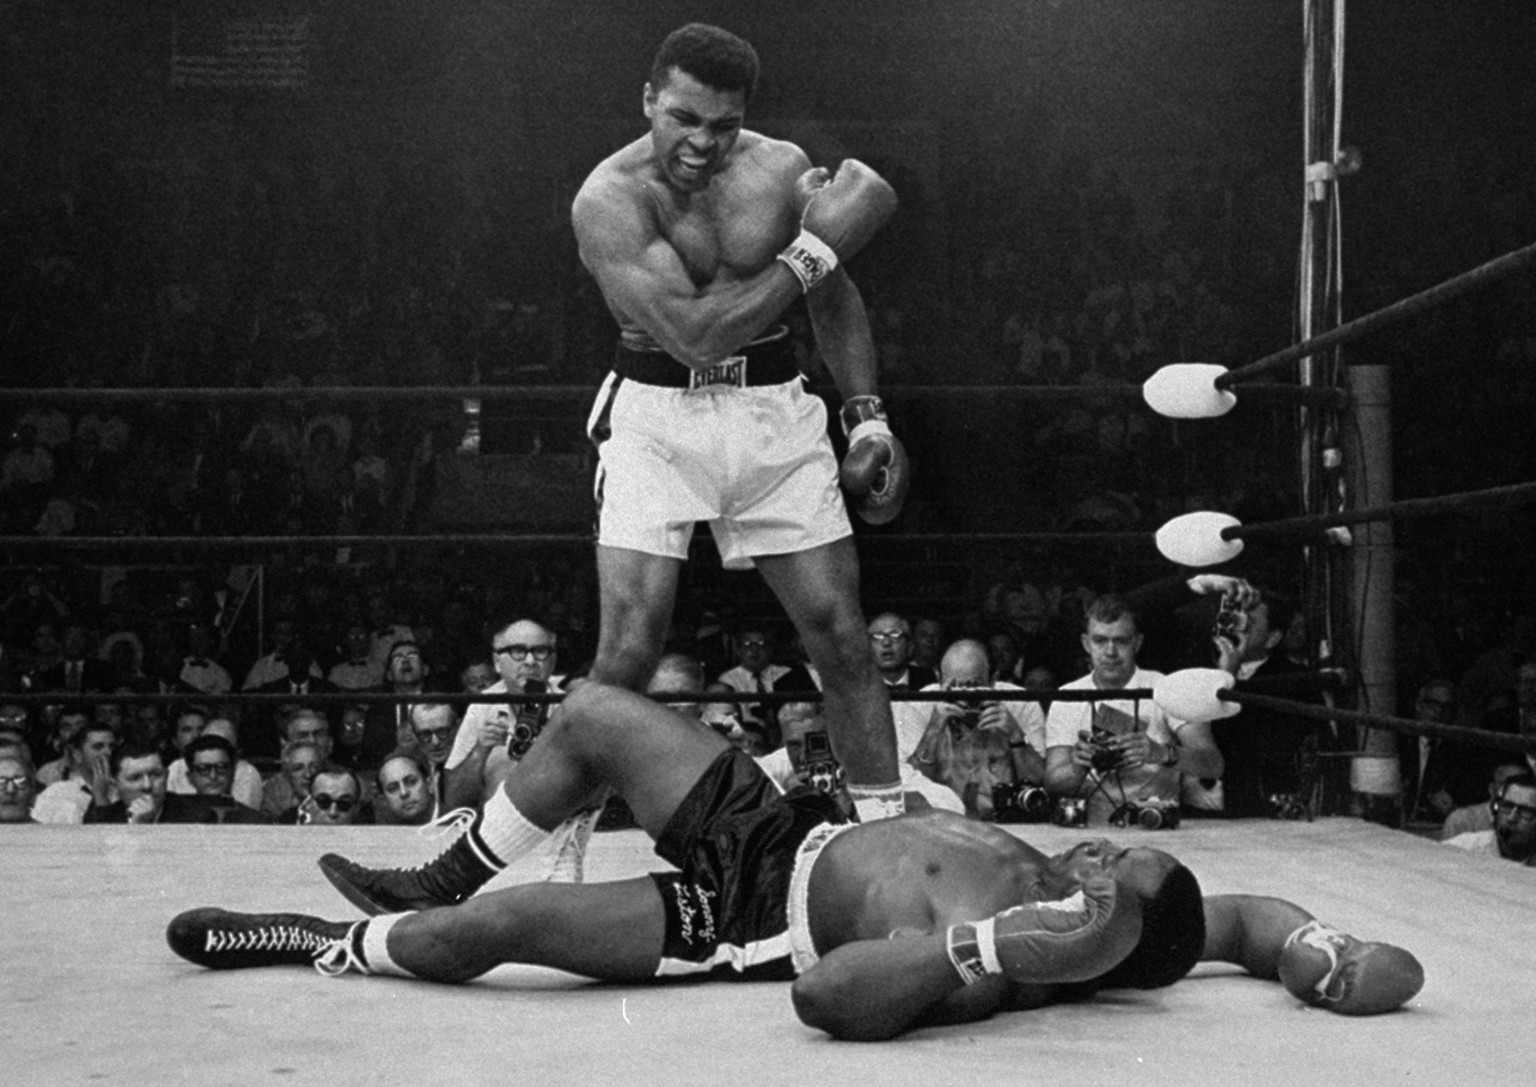 ADVANCE FOR USE SUNDAY, FEB. 23, 2014 AND THEREAFTER - FILE - In this May 25, 1965 file photo, heavyweight champion Muhammad Ali stands over fallen challenger Sonny Liston, shortly after dropping Liston with a short hard right to the jaw in Lewiston, Maine. In 1964 he dropped the name Cassius Clay and adopted his Muslim name. (AP Photo/John Rooney)